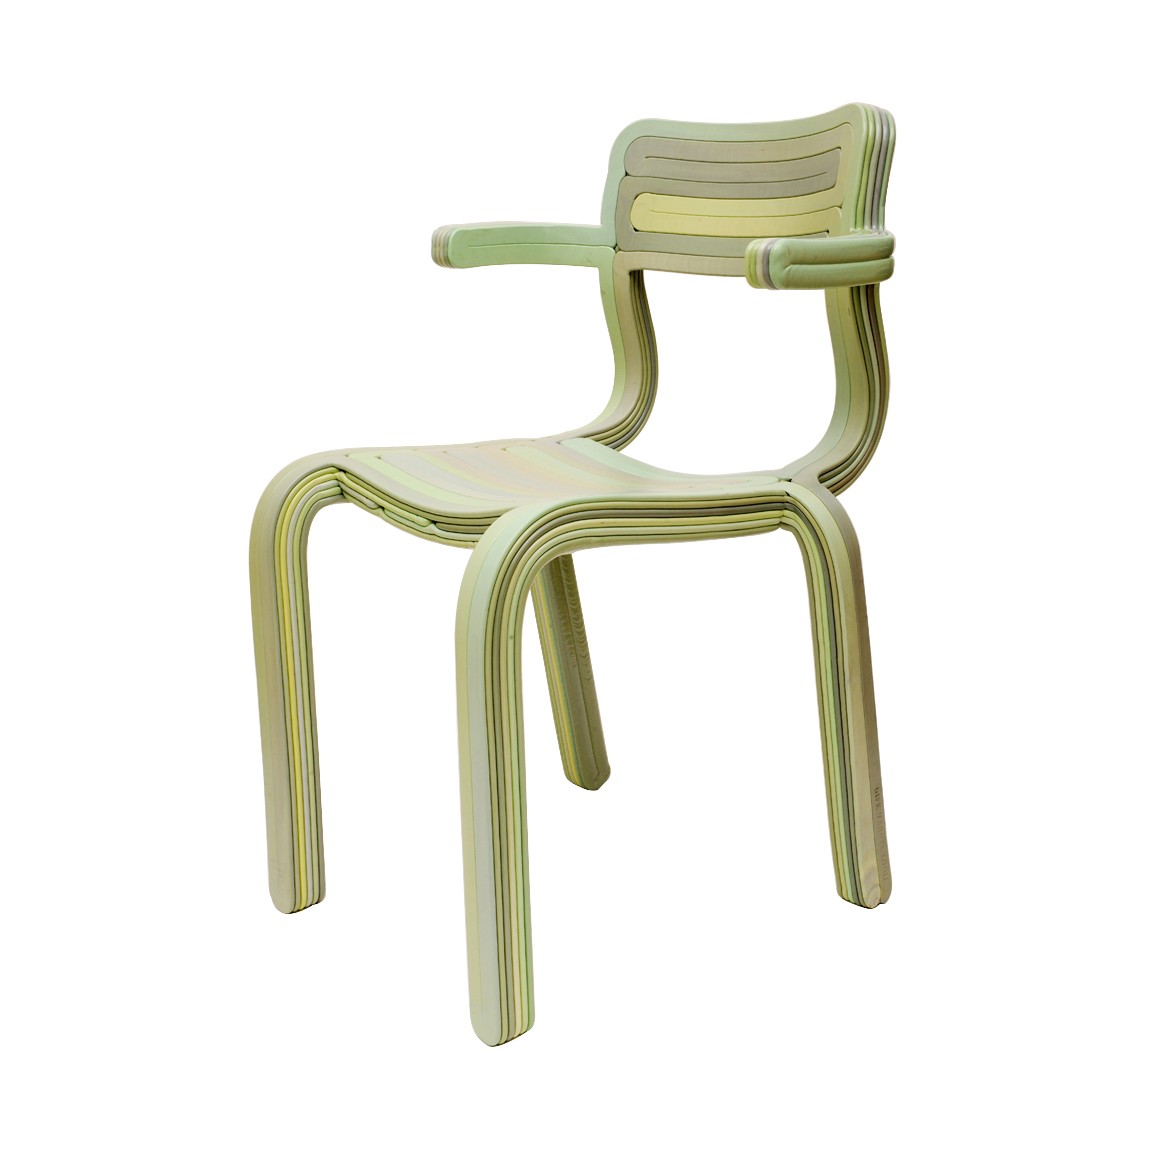 RvR Dining Chair Olive green